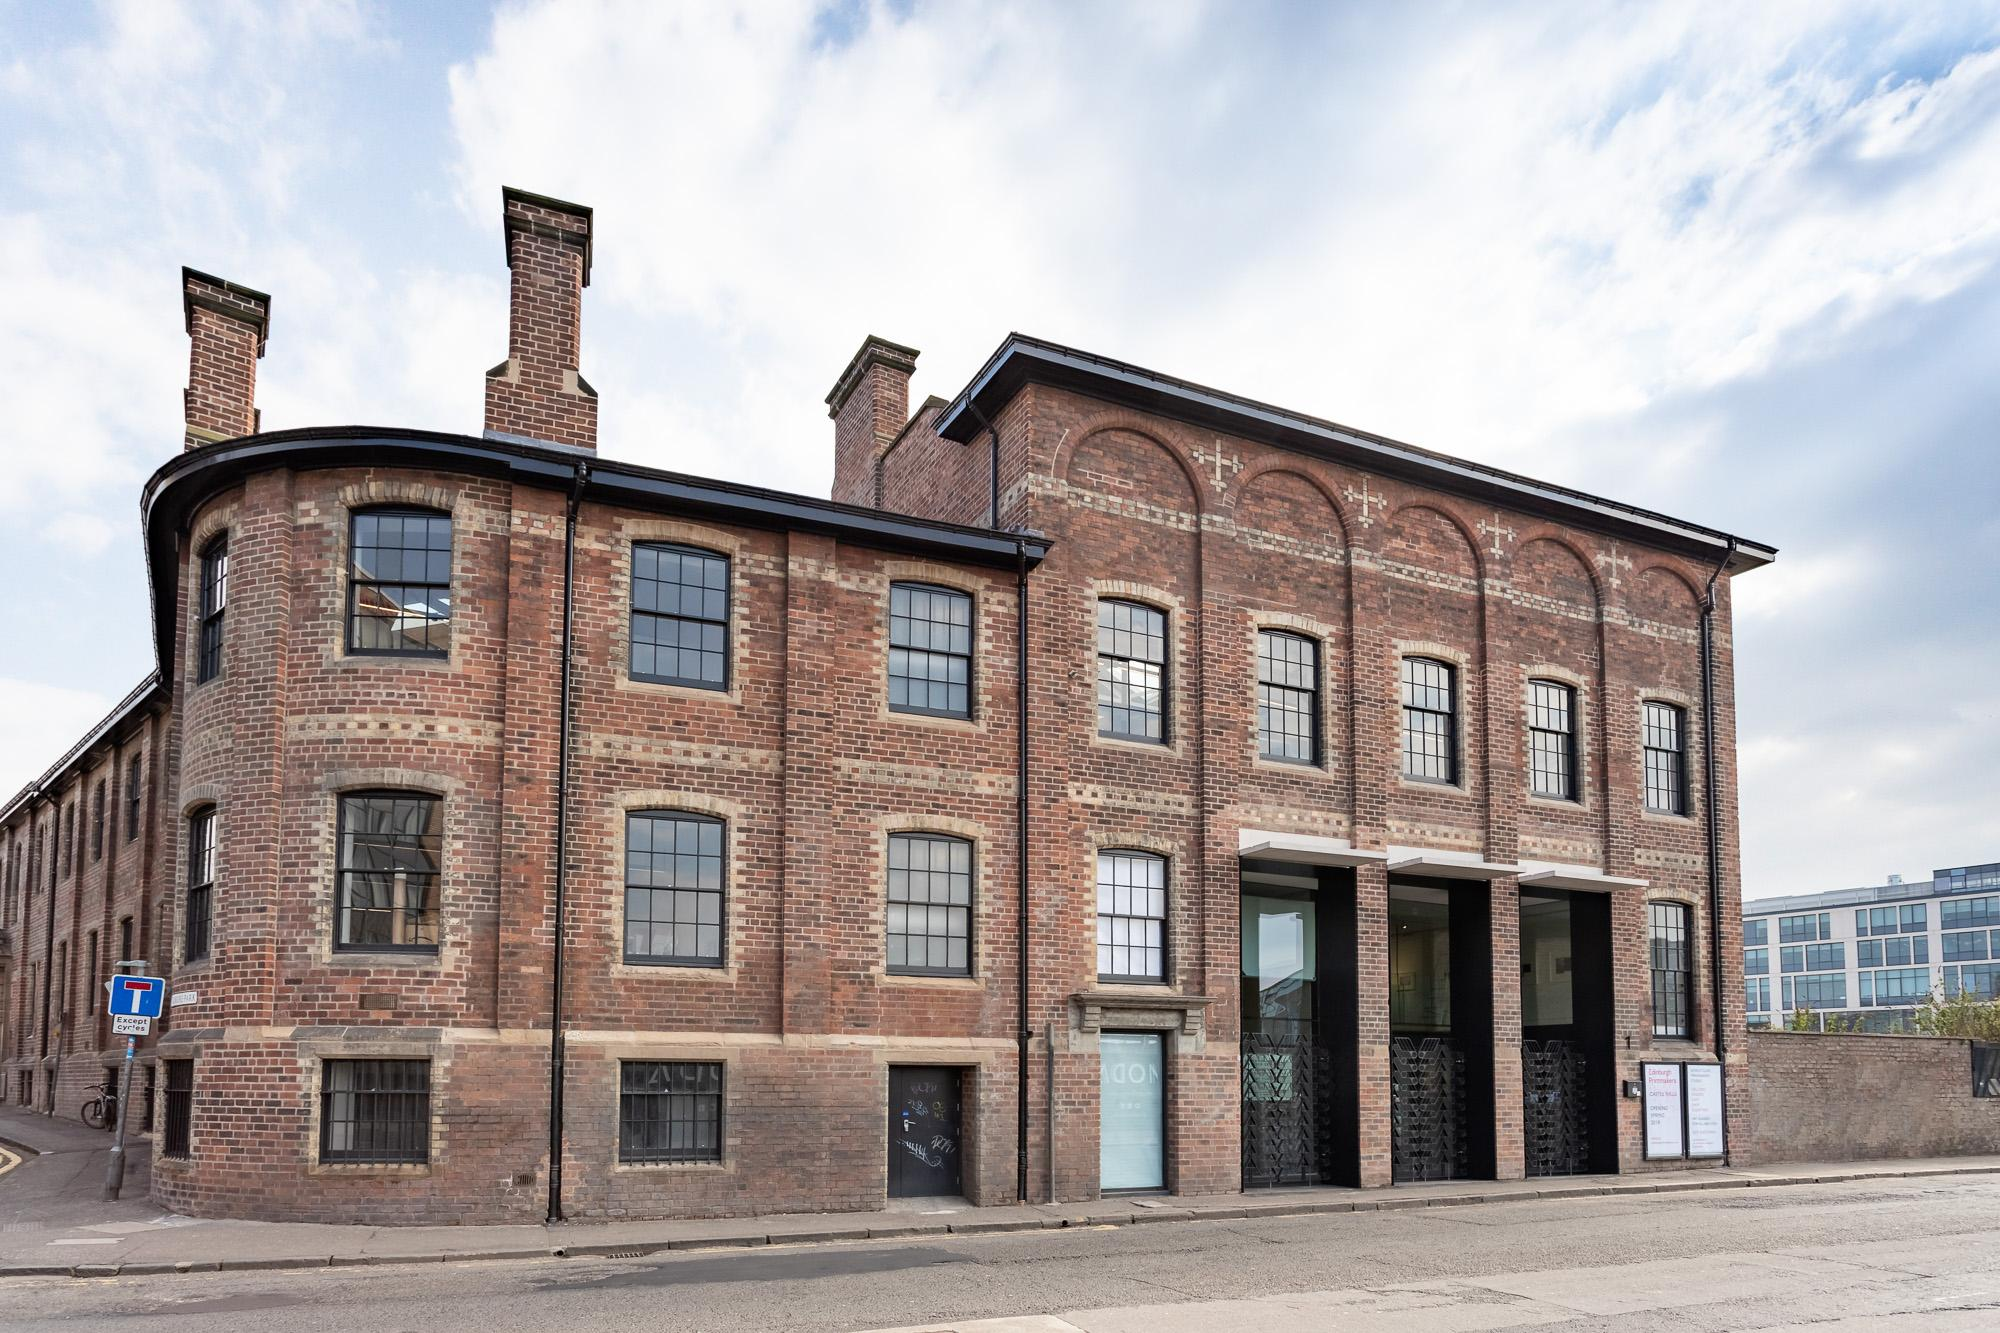 2020 Guided Tours of Castle Mills